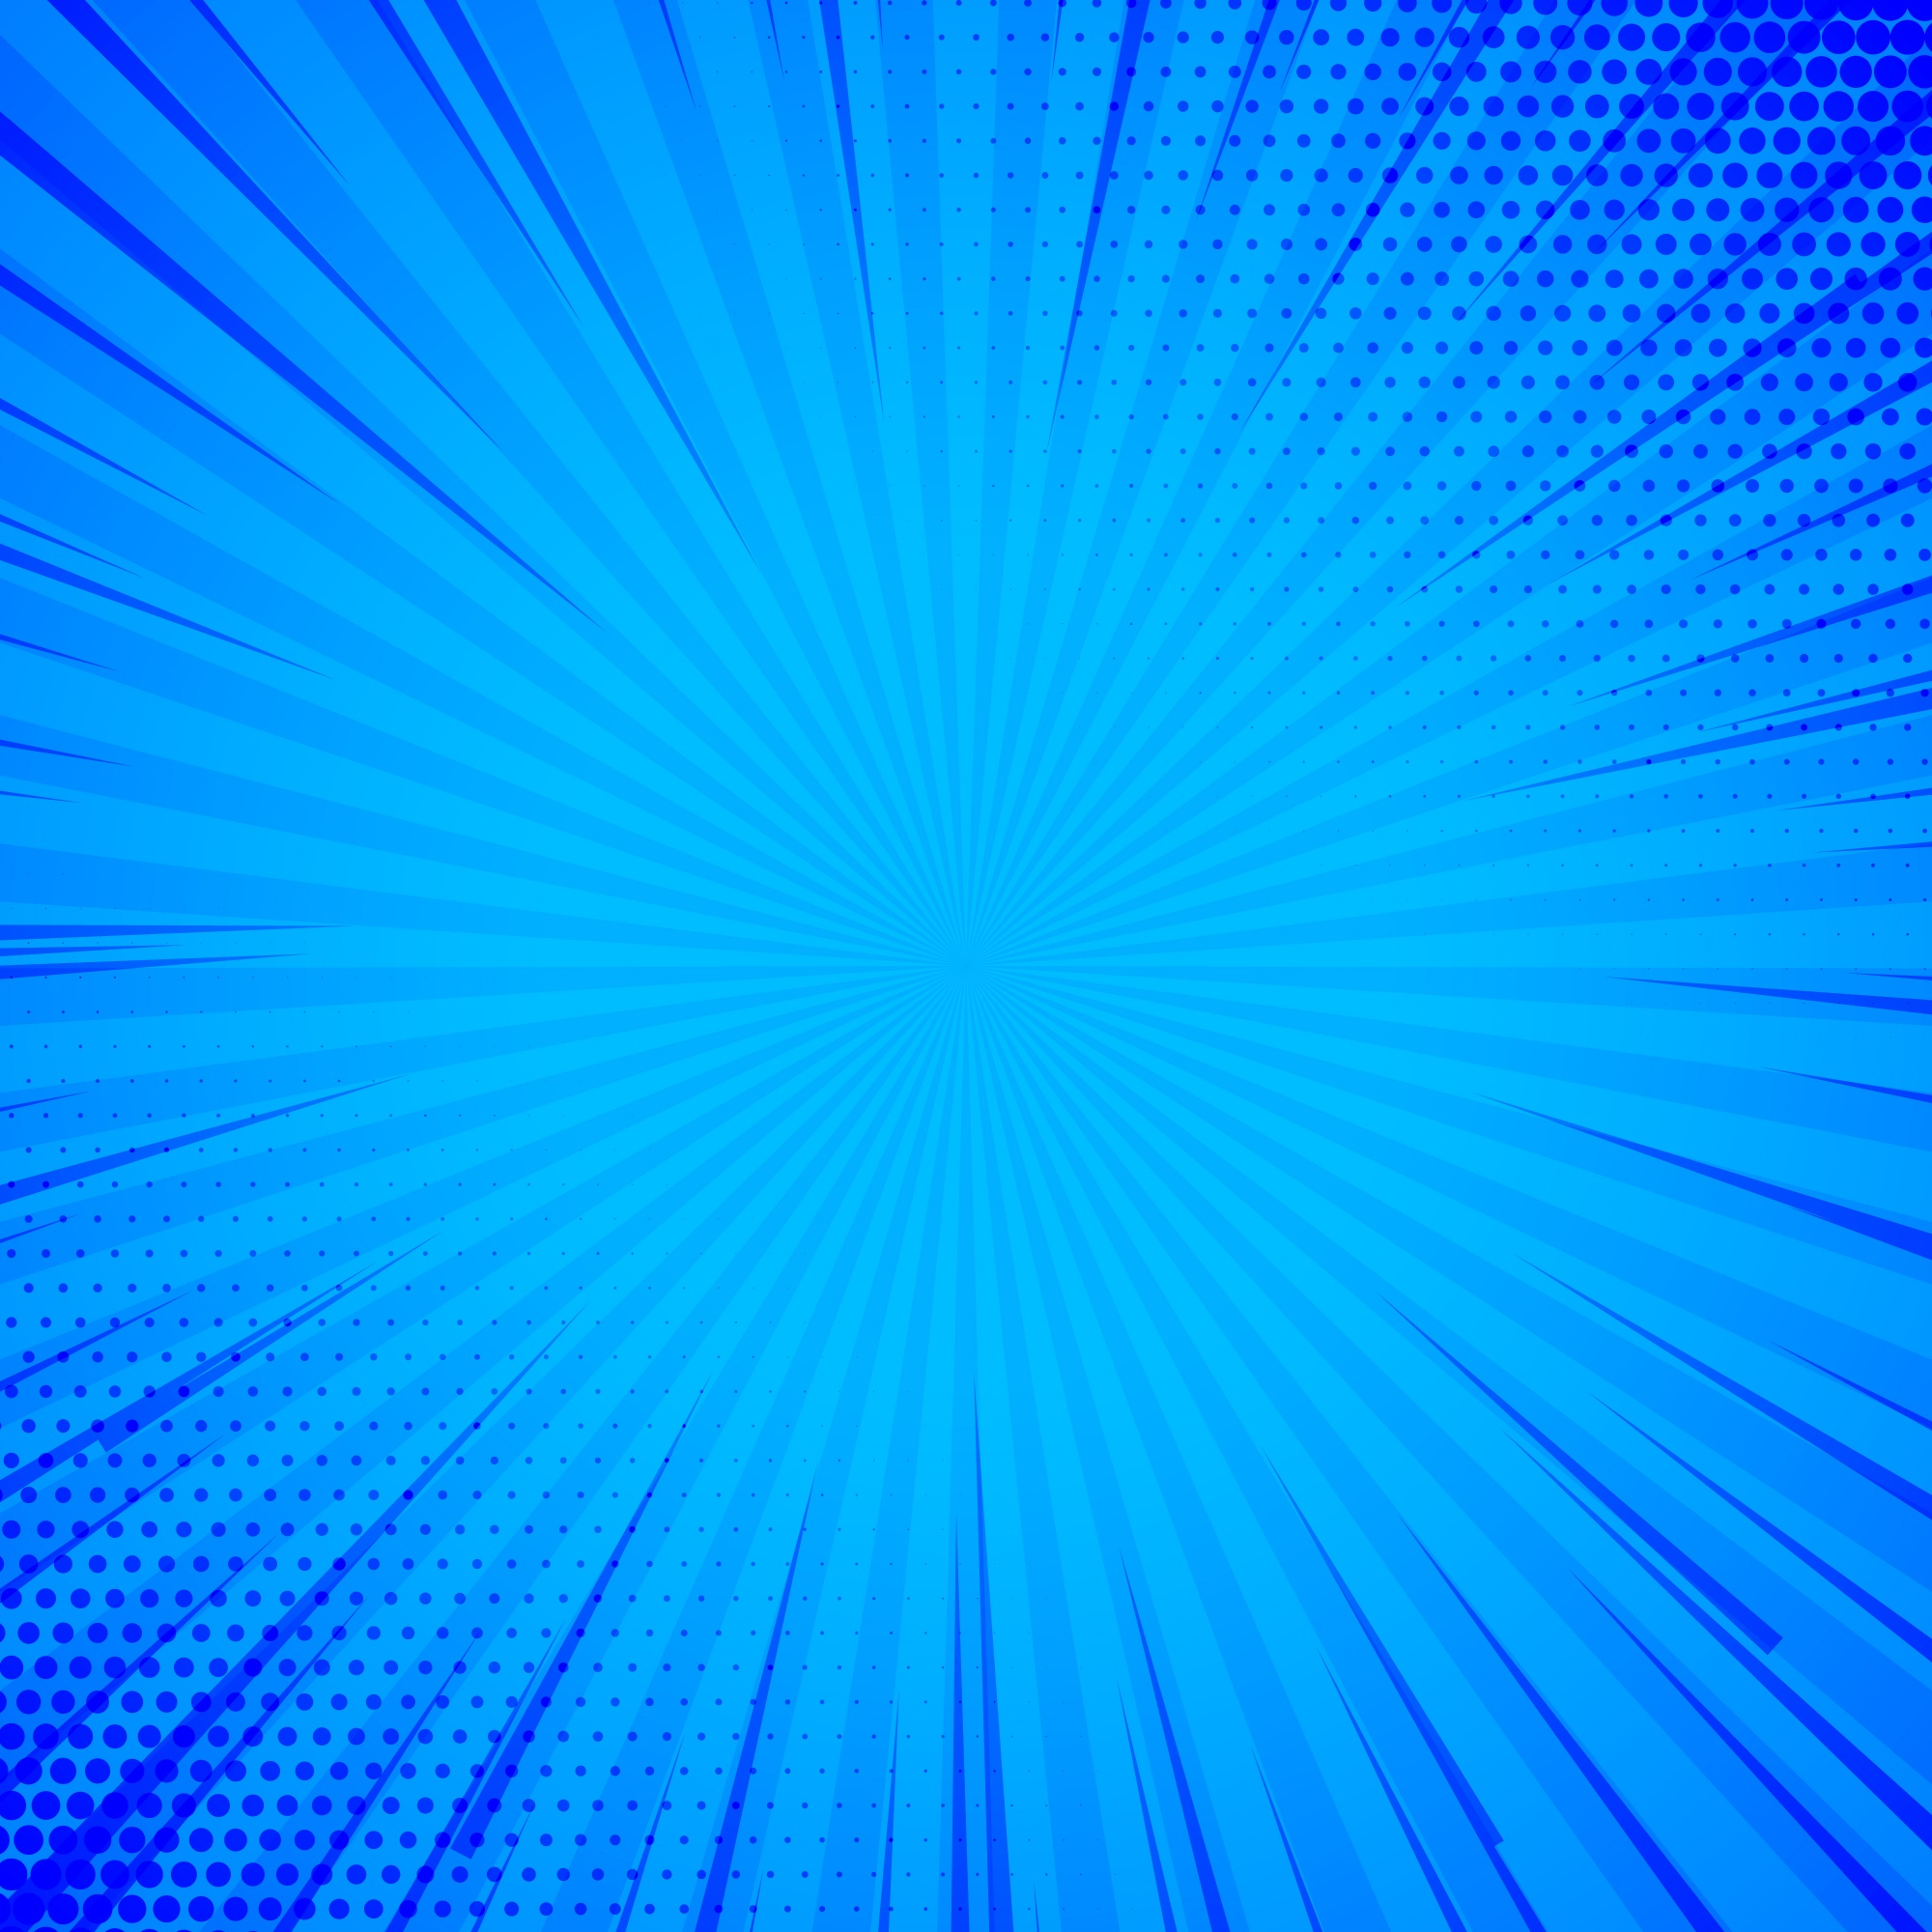 blue background vectors  photos and psd files free download sunburst vector free sunburst vector free download